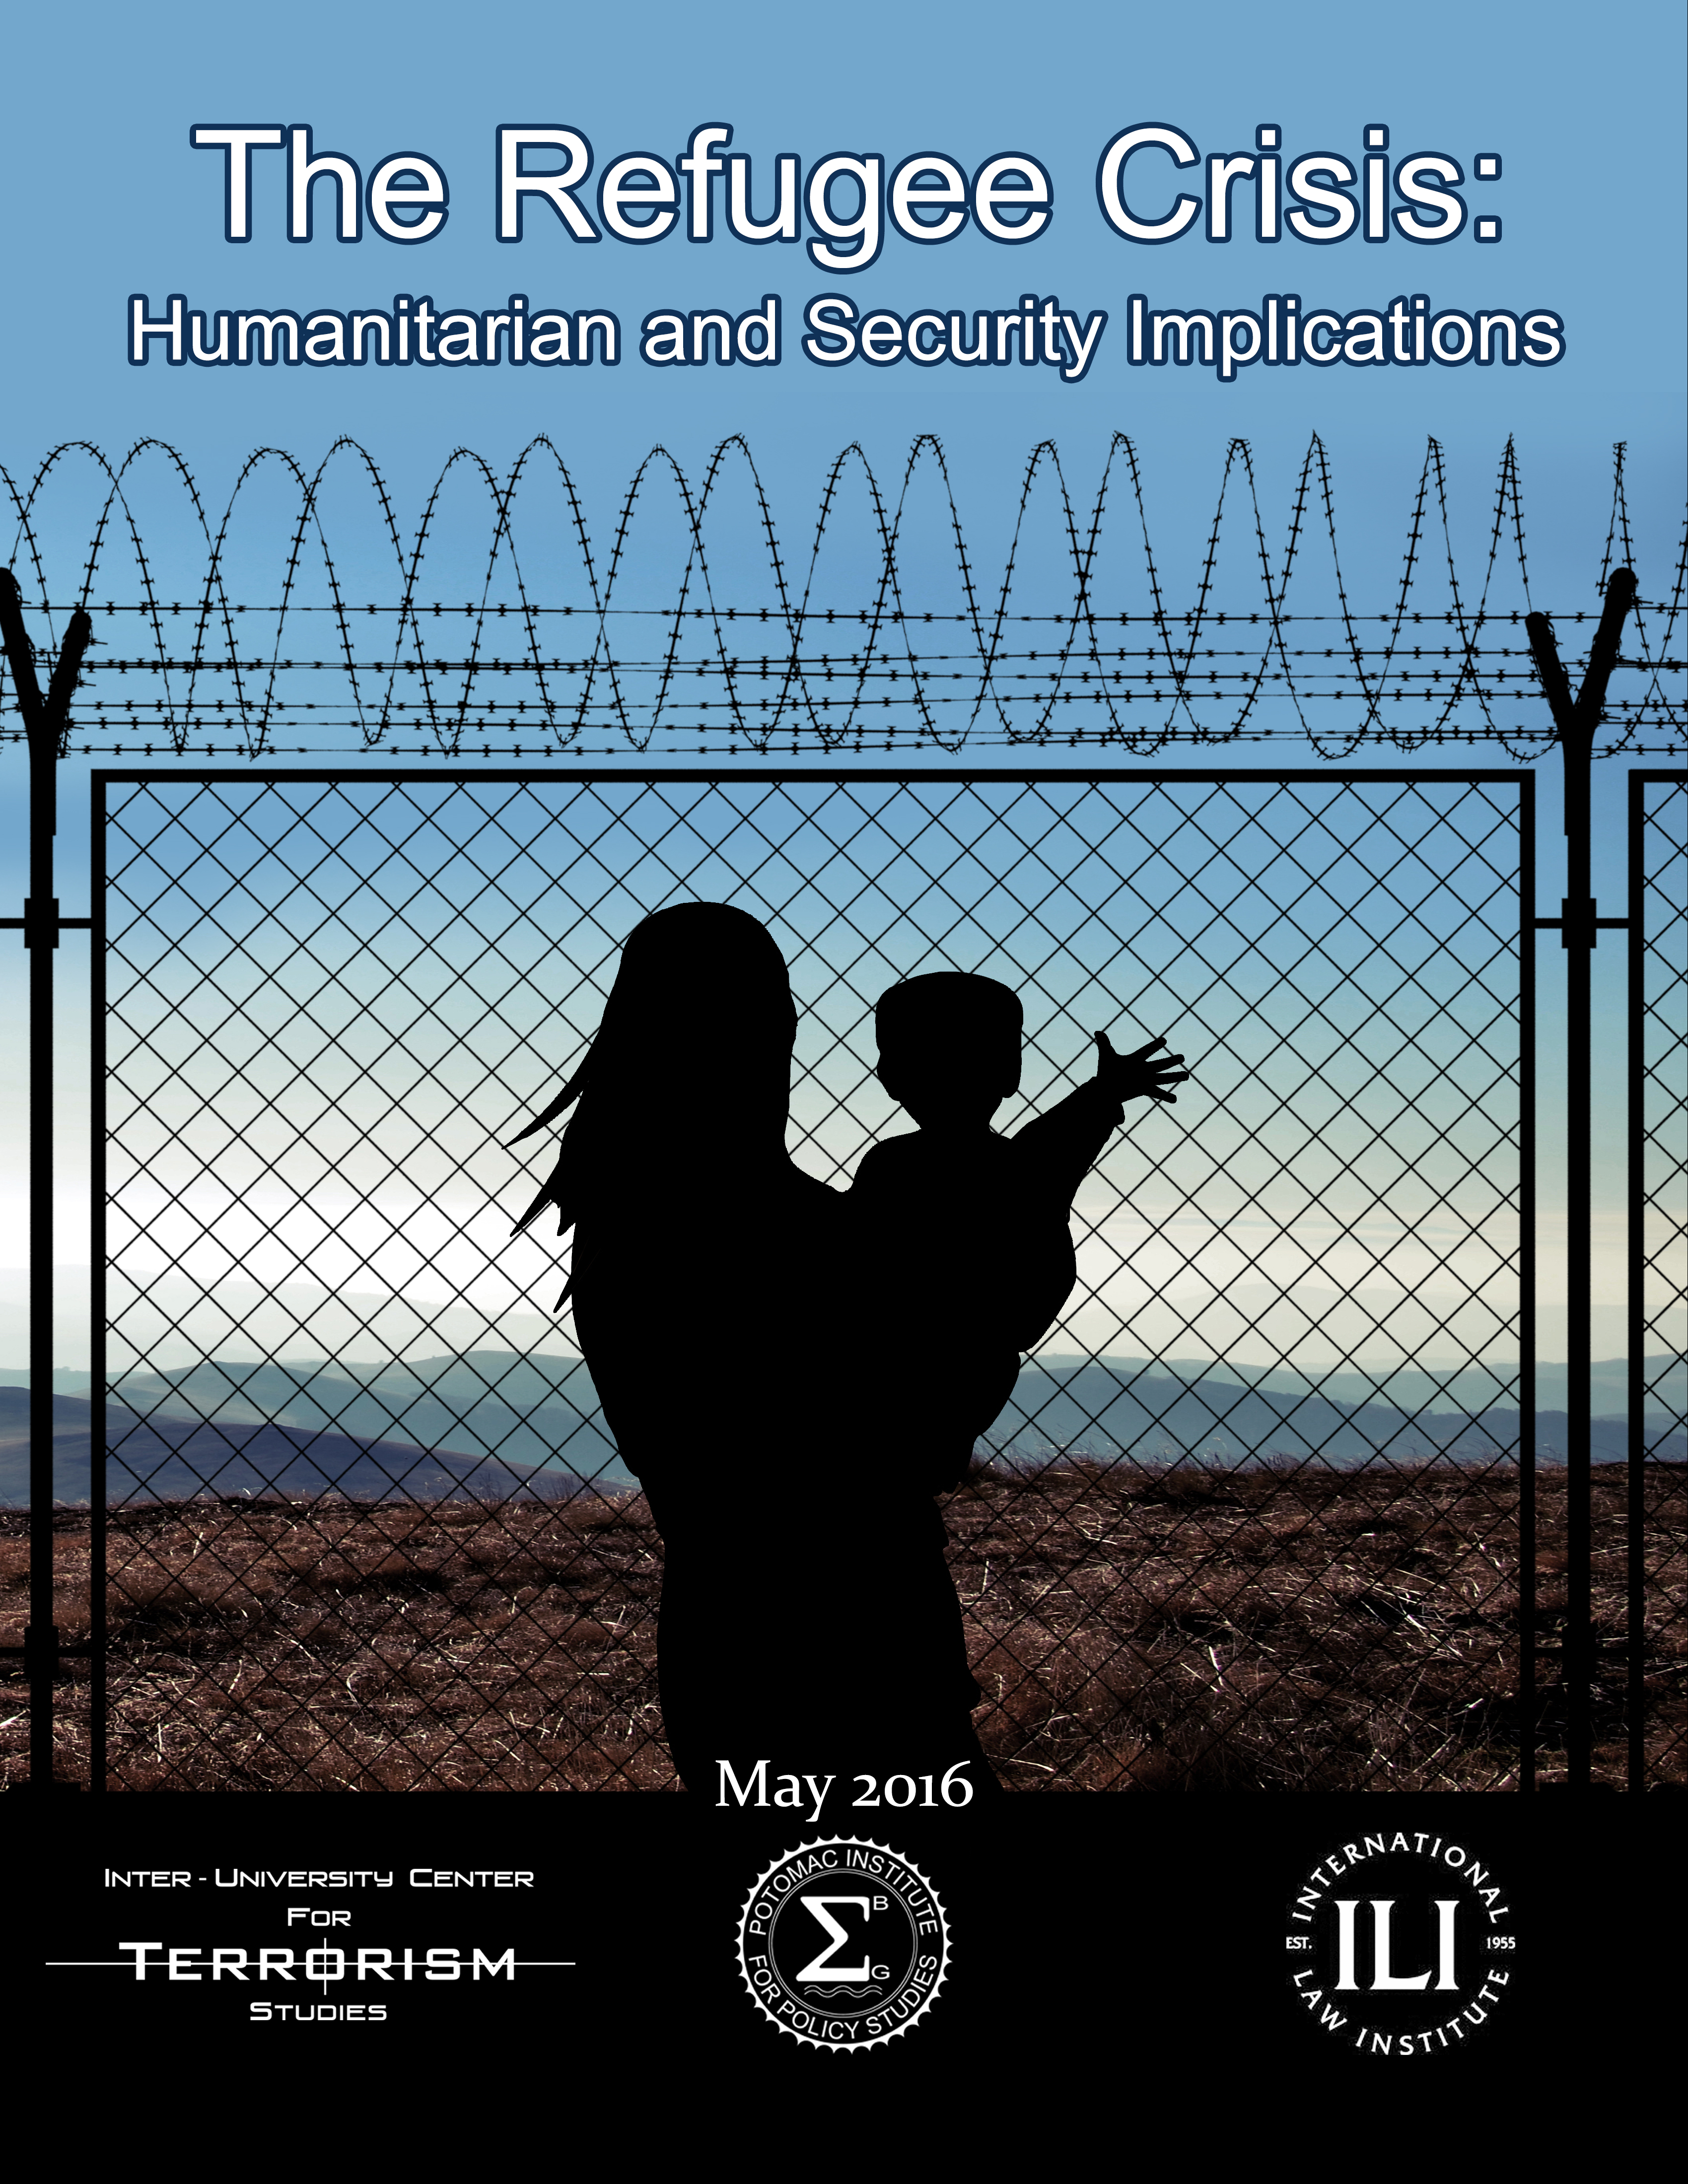 The Refugee Crisis: Humanitarian and Security Implications